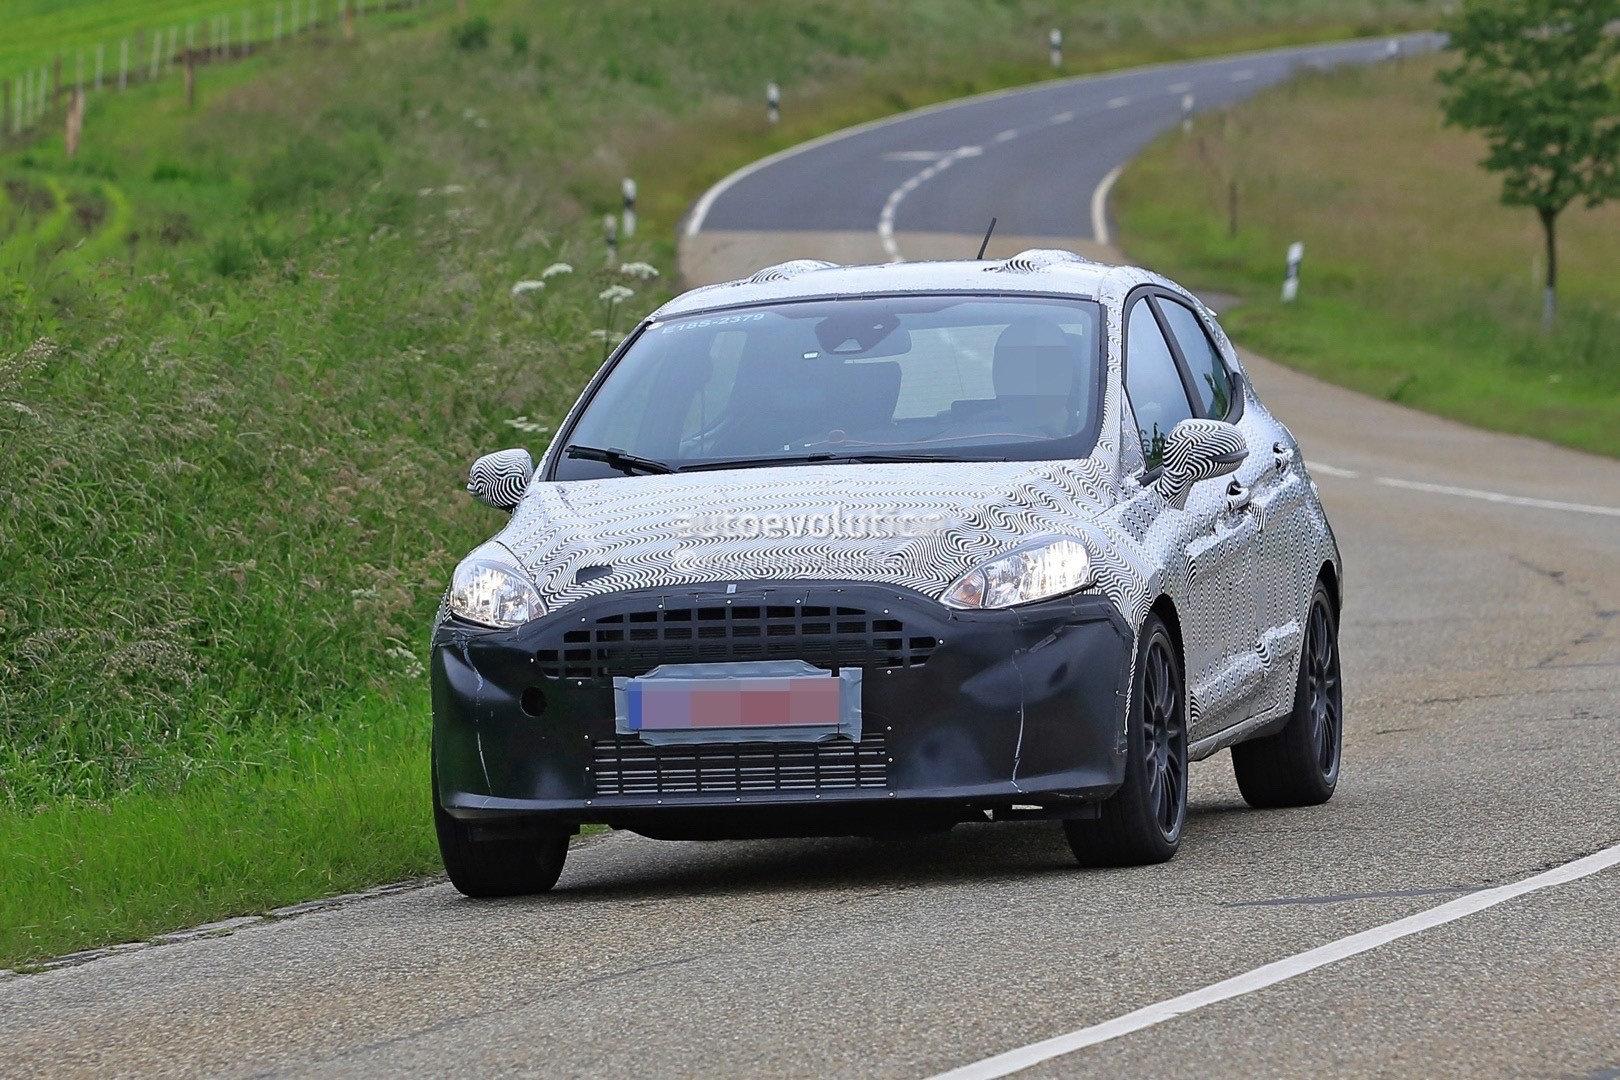 Ford Grand Tourneo Connect >> 2018 Ford Fiesta ST Spied Benchmarking Against Current ...